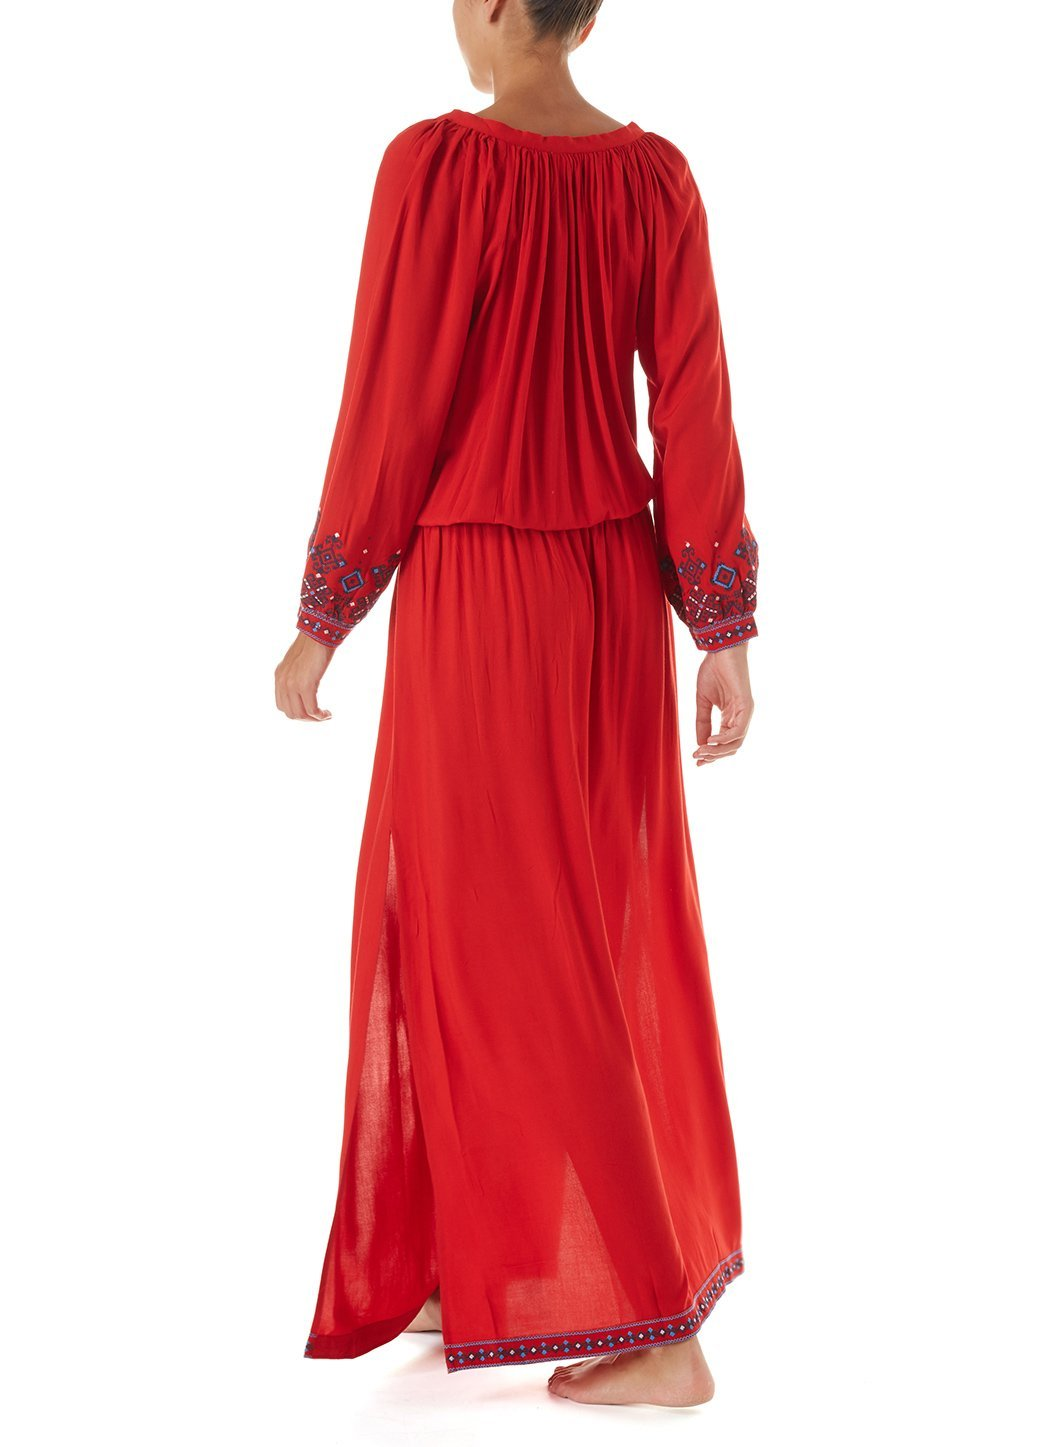 sienna red embroidered 34sleeve maxi dress 2019 B